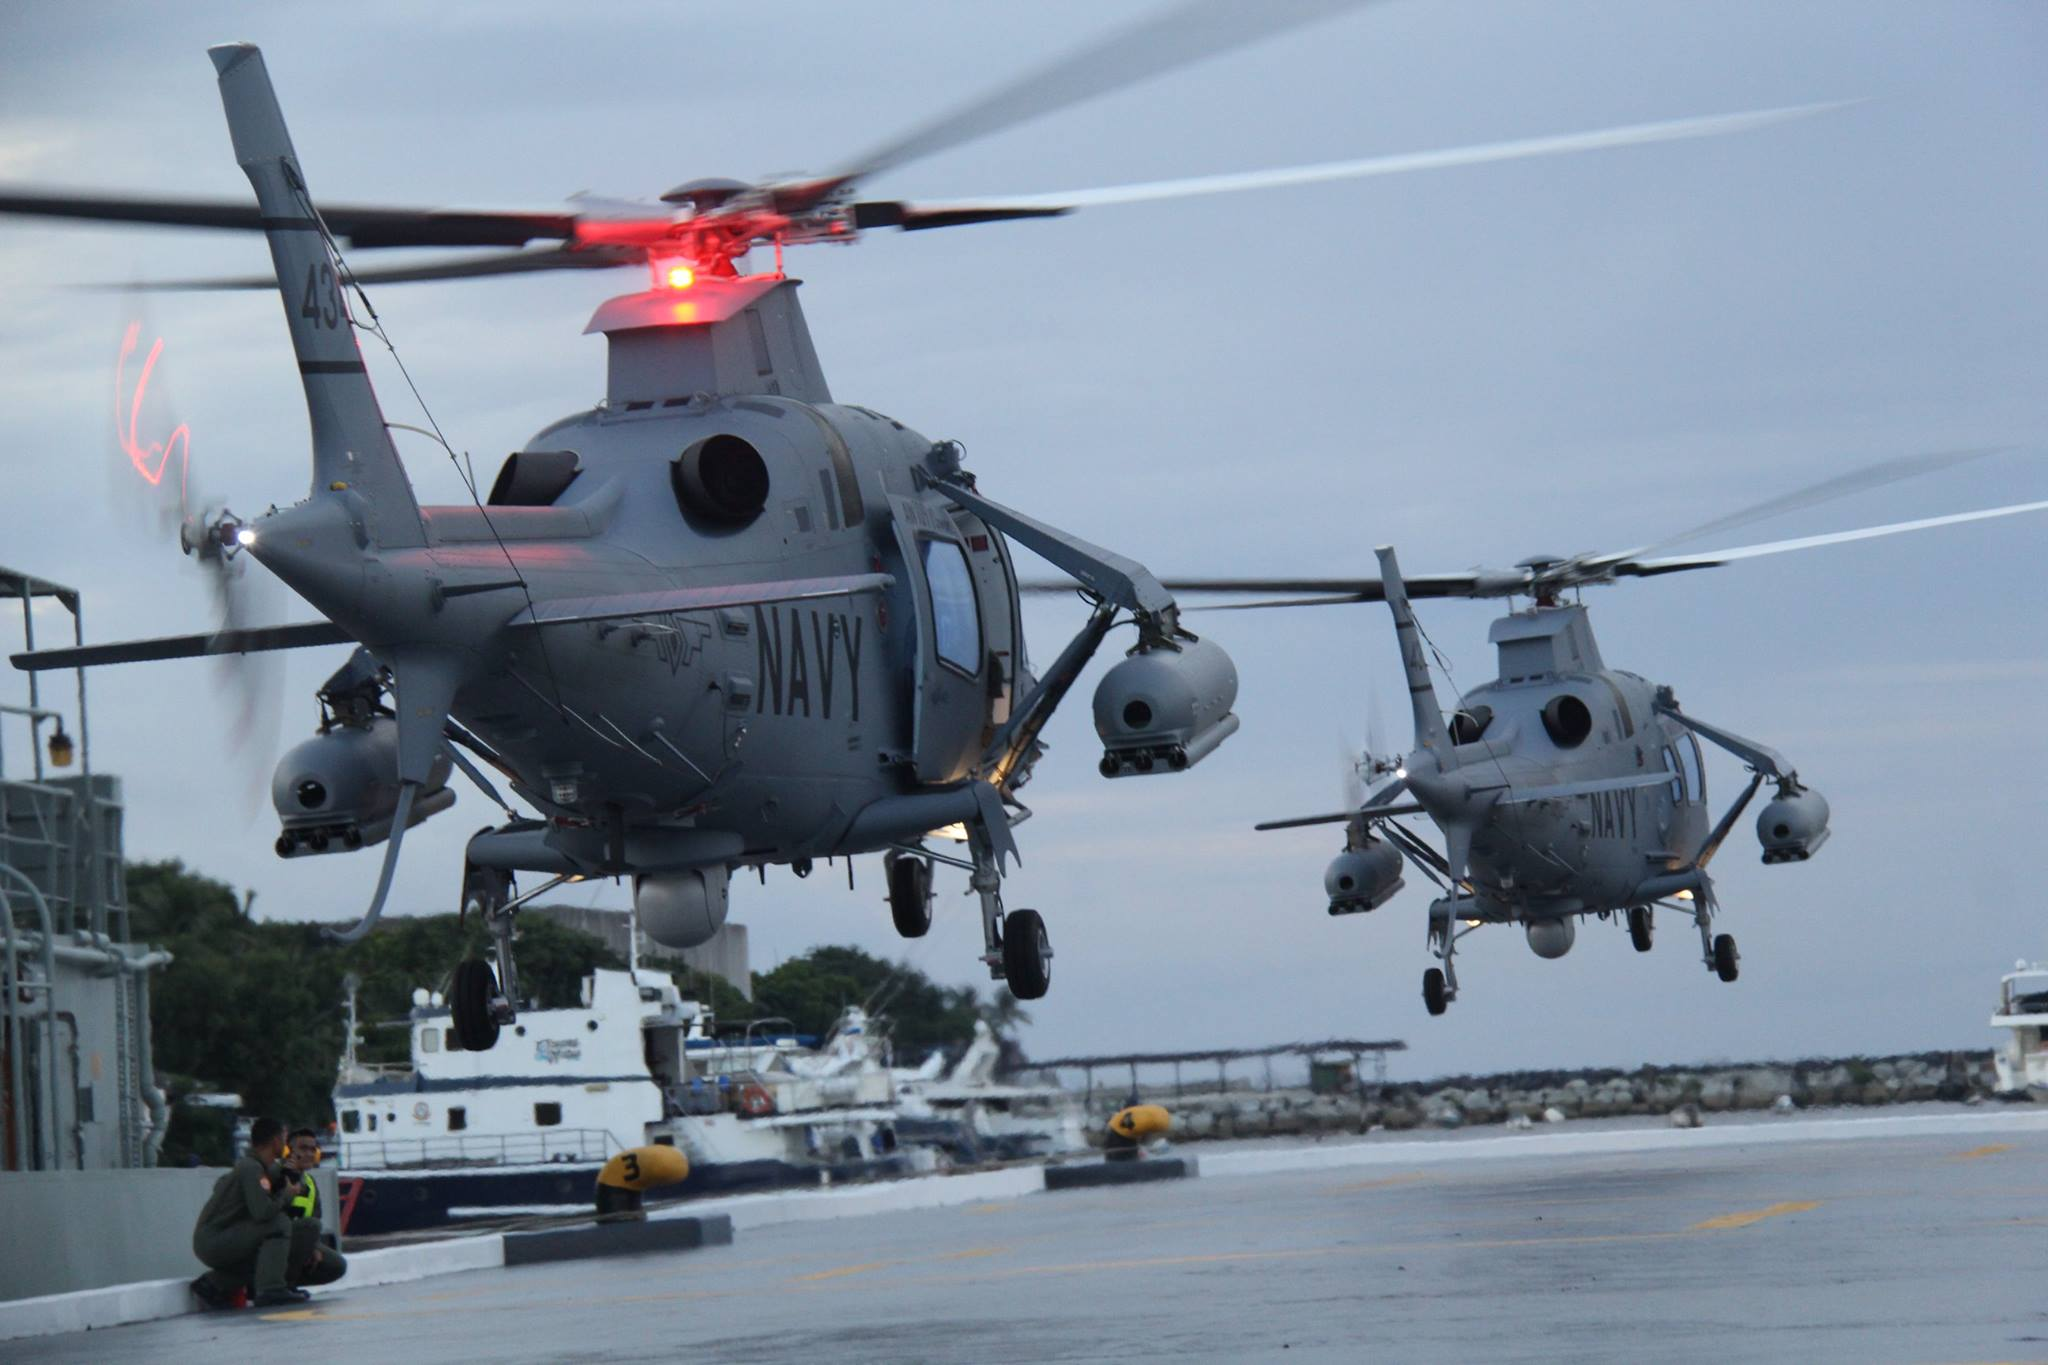 AW 109 attack helicopters